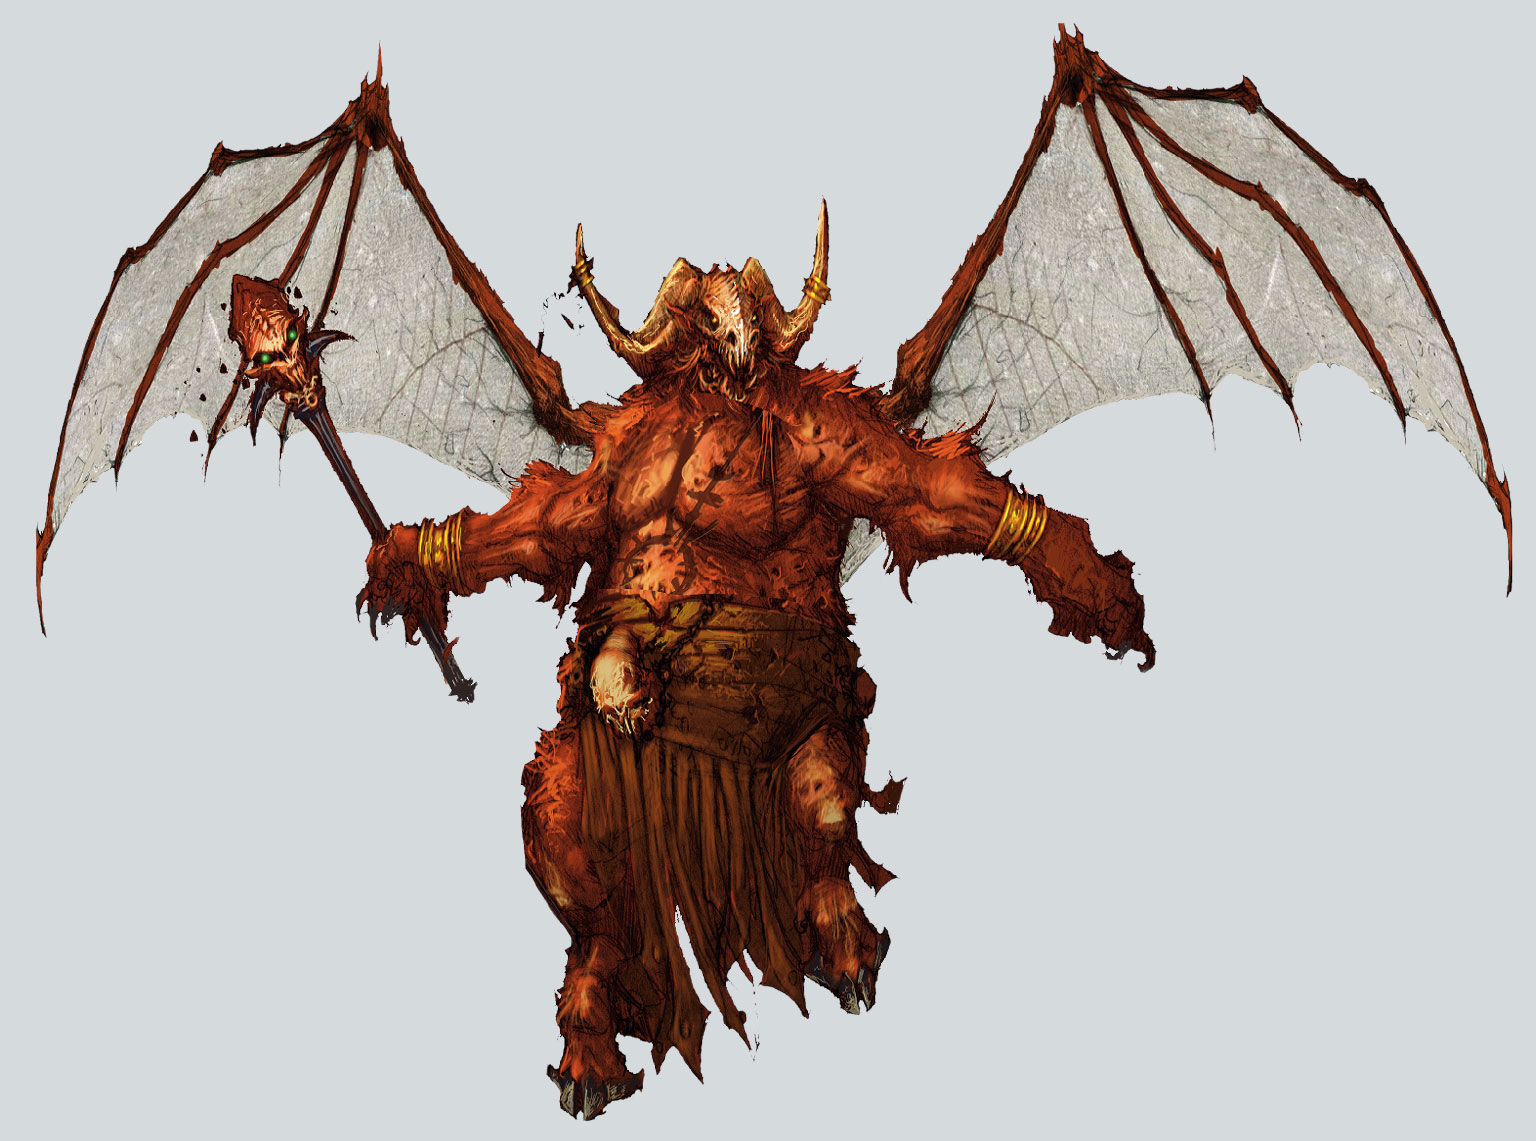 Orcus | Forgotten Realms Wiki | FANDOM powered by Wikia